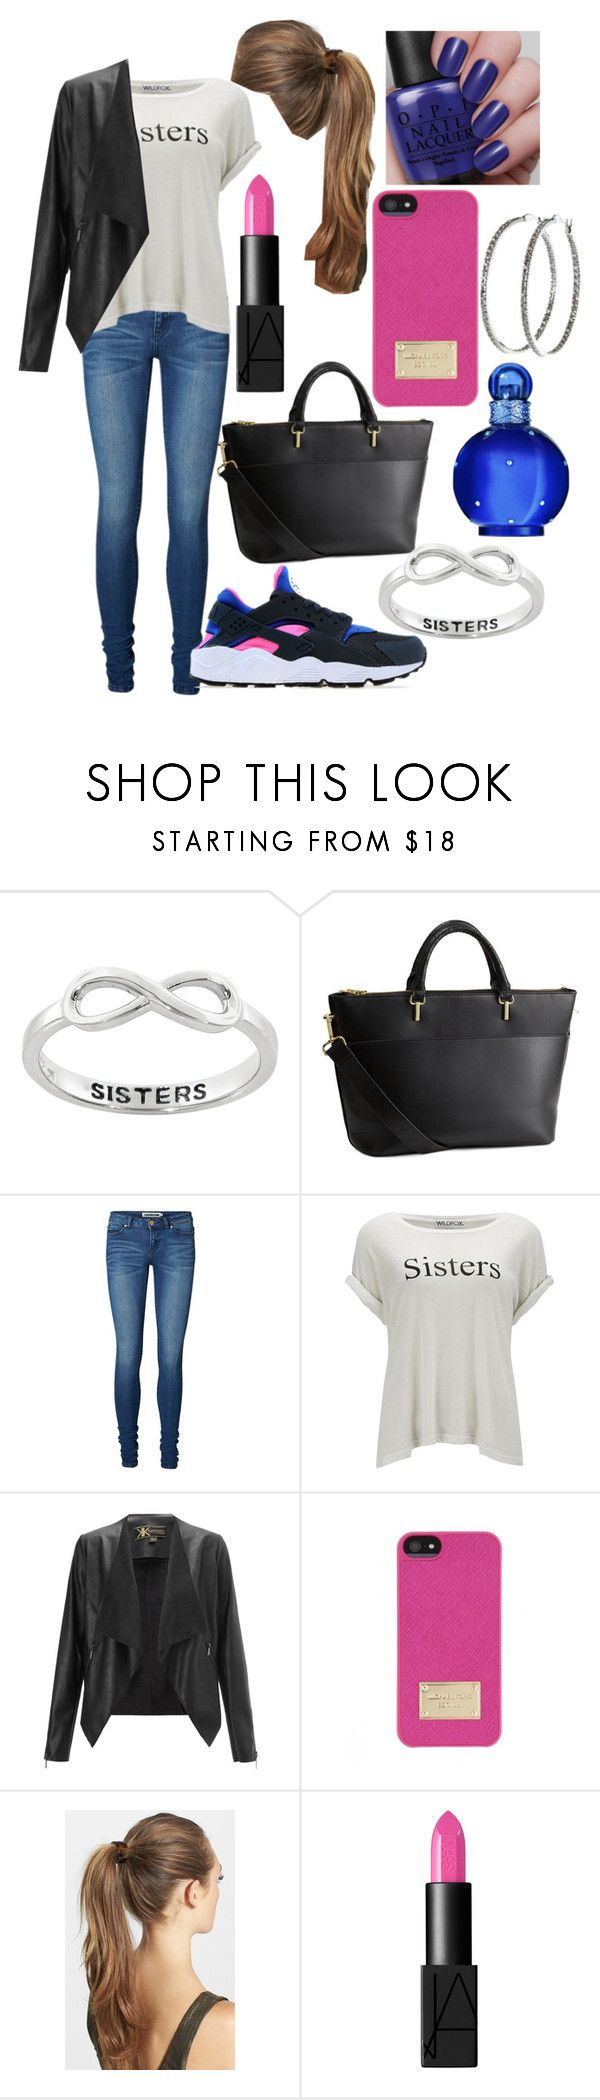 """sisters day out"" by laurajessica ❤ liked on Polyvore featuring Eternally Haute, H&M, Vero Moda, Wildfox, Lipsy, Michael Kors, France Luxe, NARS Cosmetics, Britney Spears and Nyla Star"